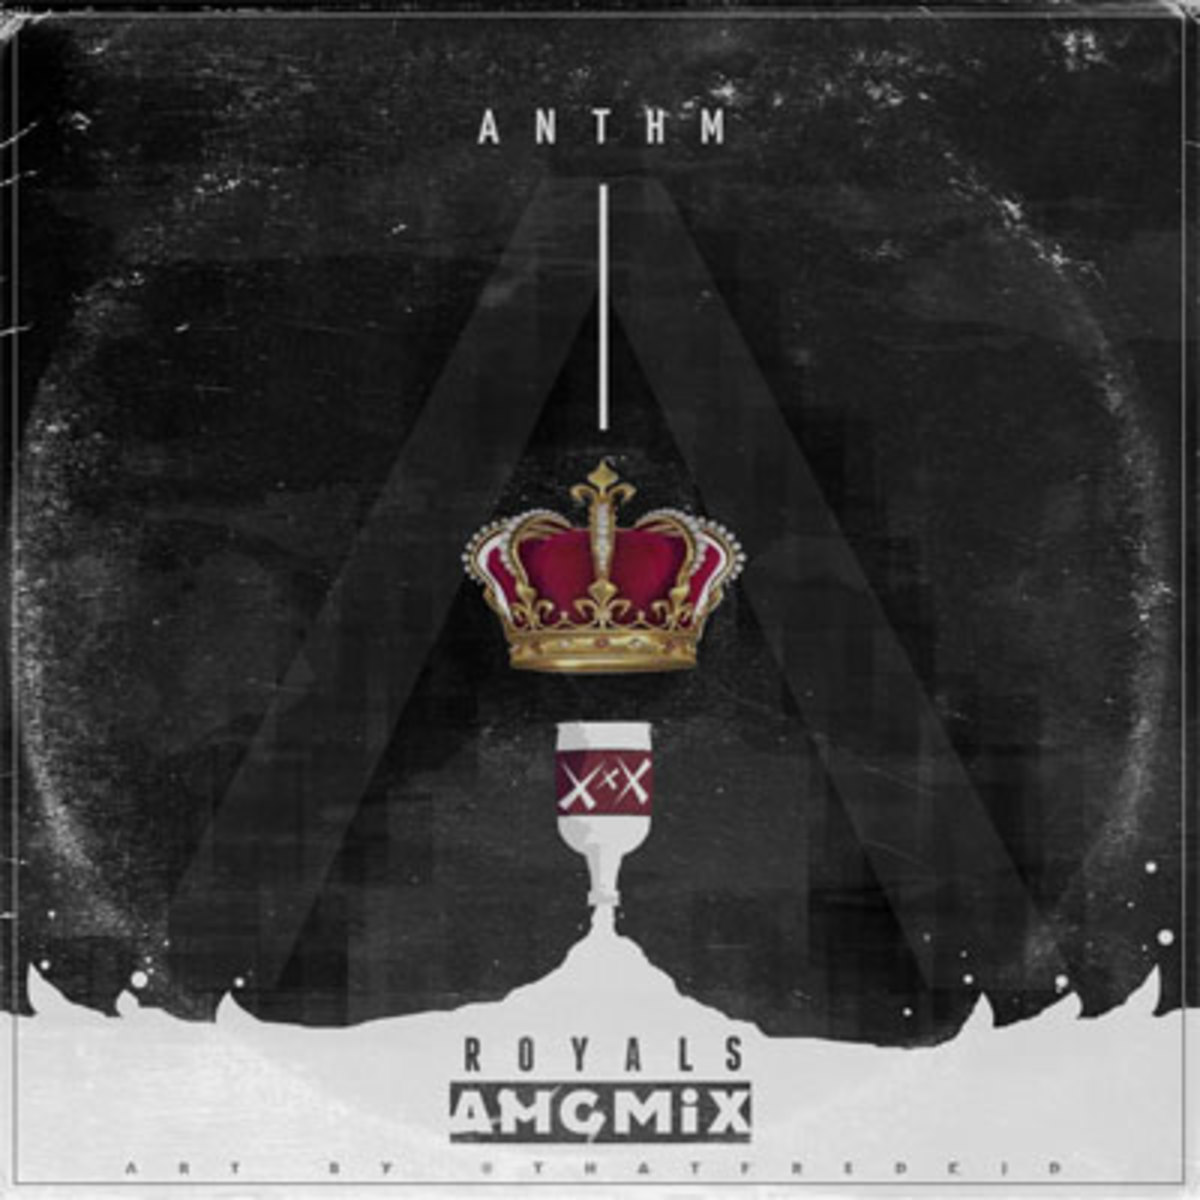 anthm-royalsrmx.jpg